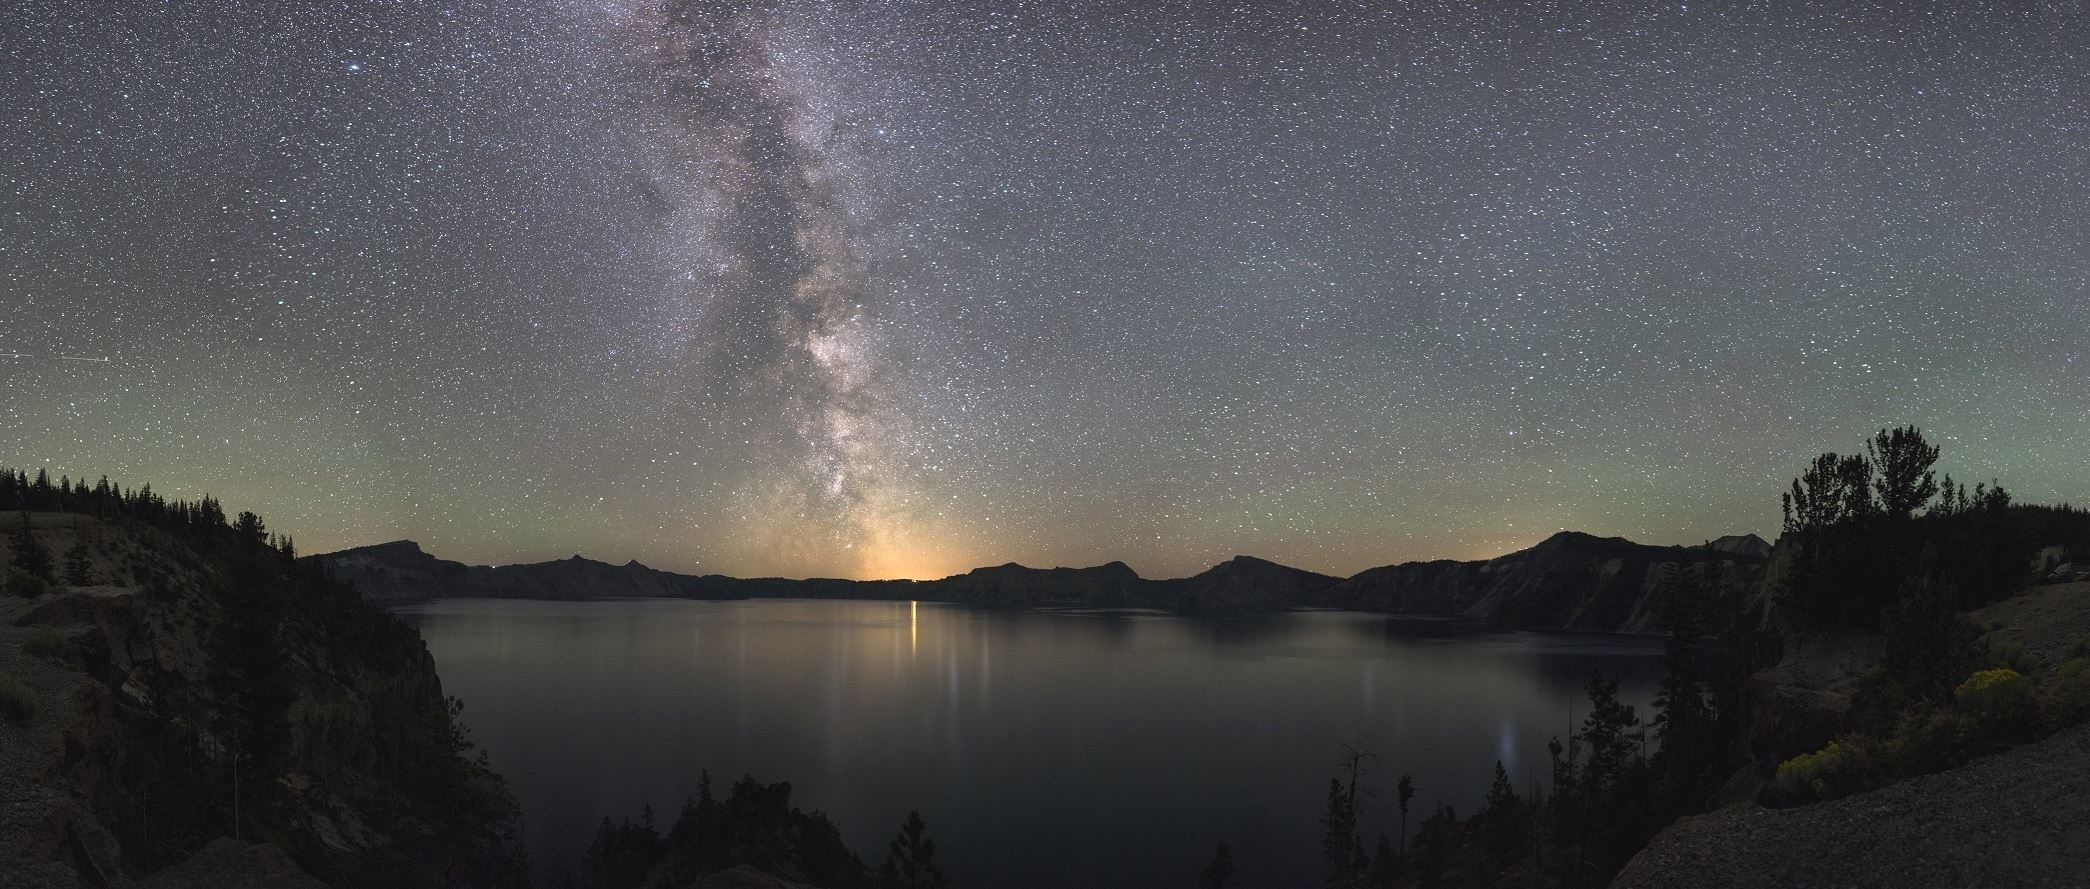 Free Picture Cosmos Crater Lake Astronomy Galaxy Night